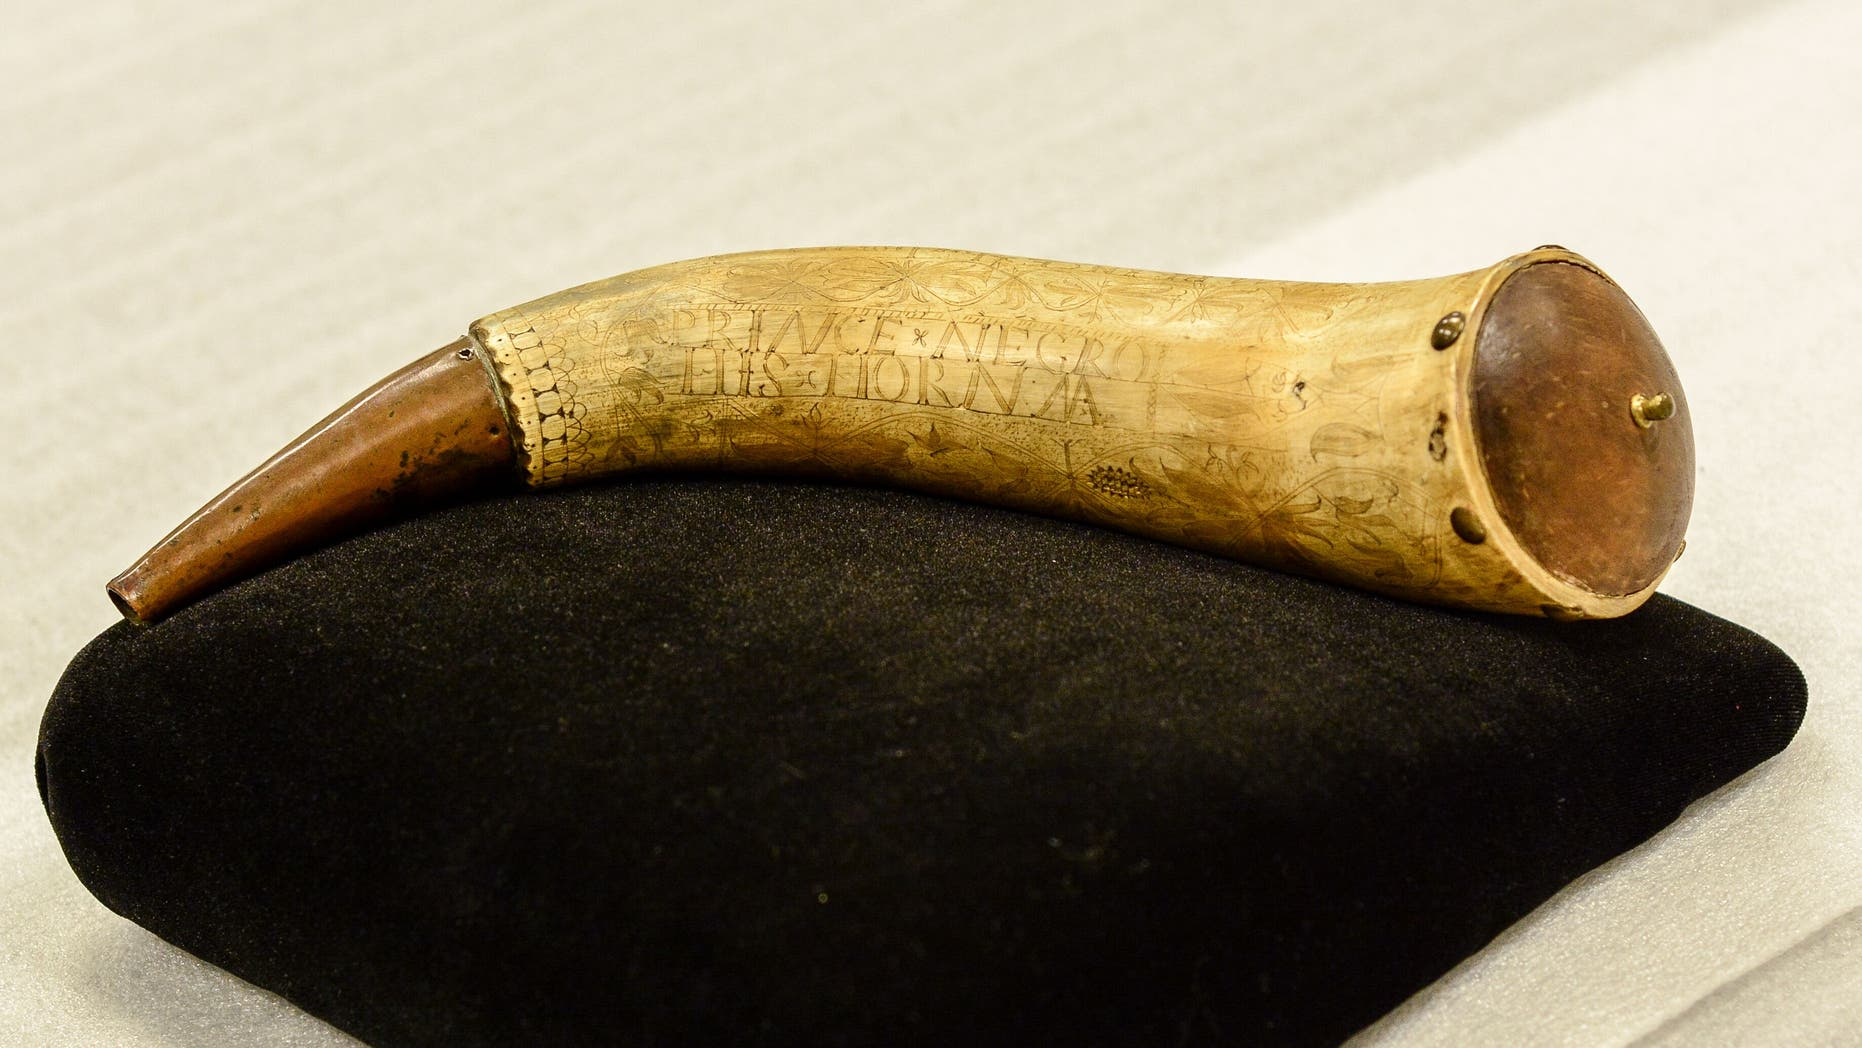 The horn belonged to African American Revolutionary War soldier Gershom Prince.